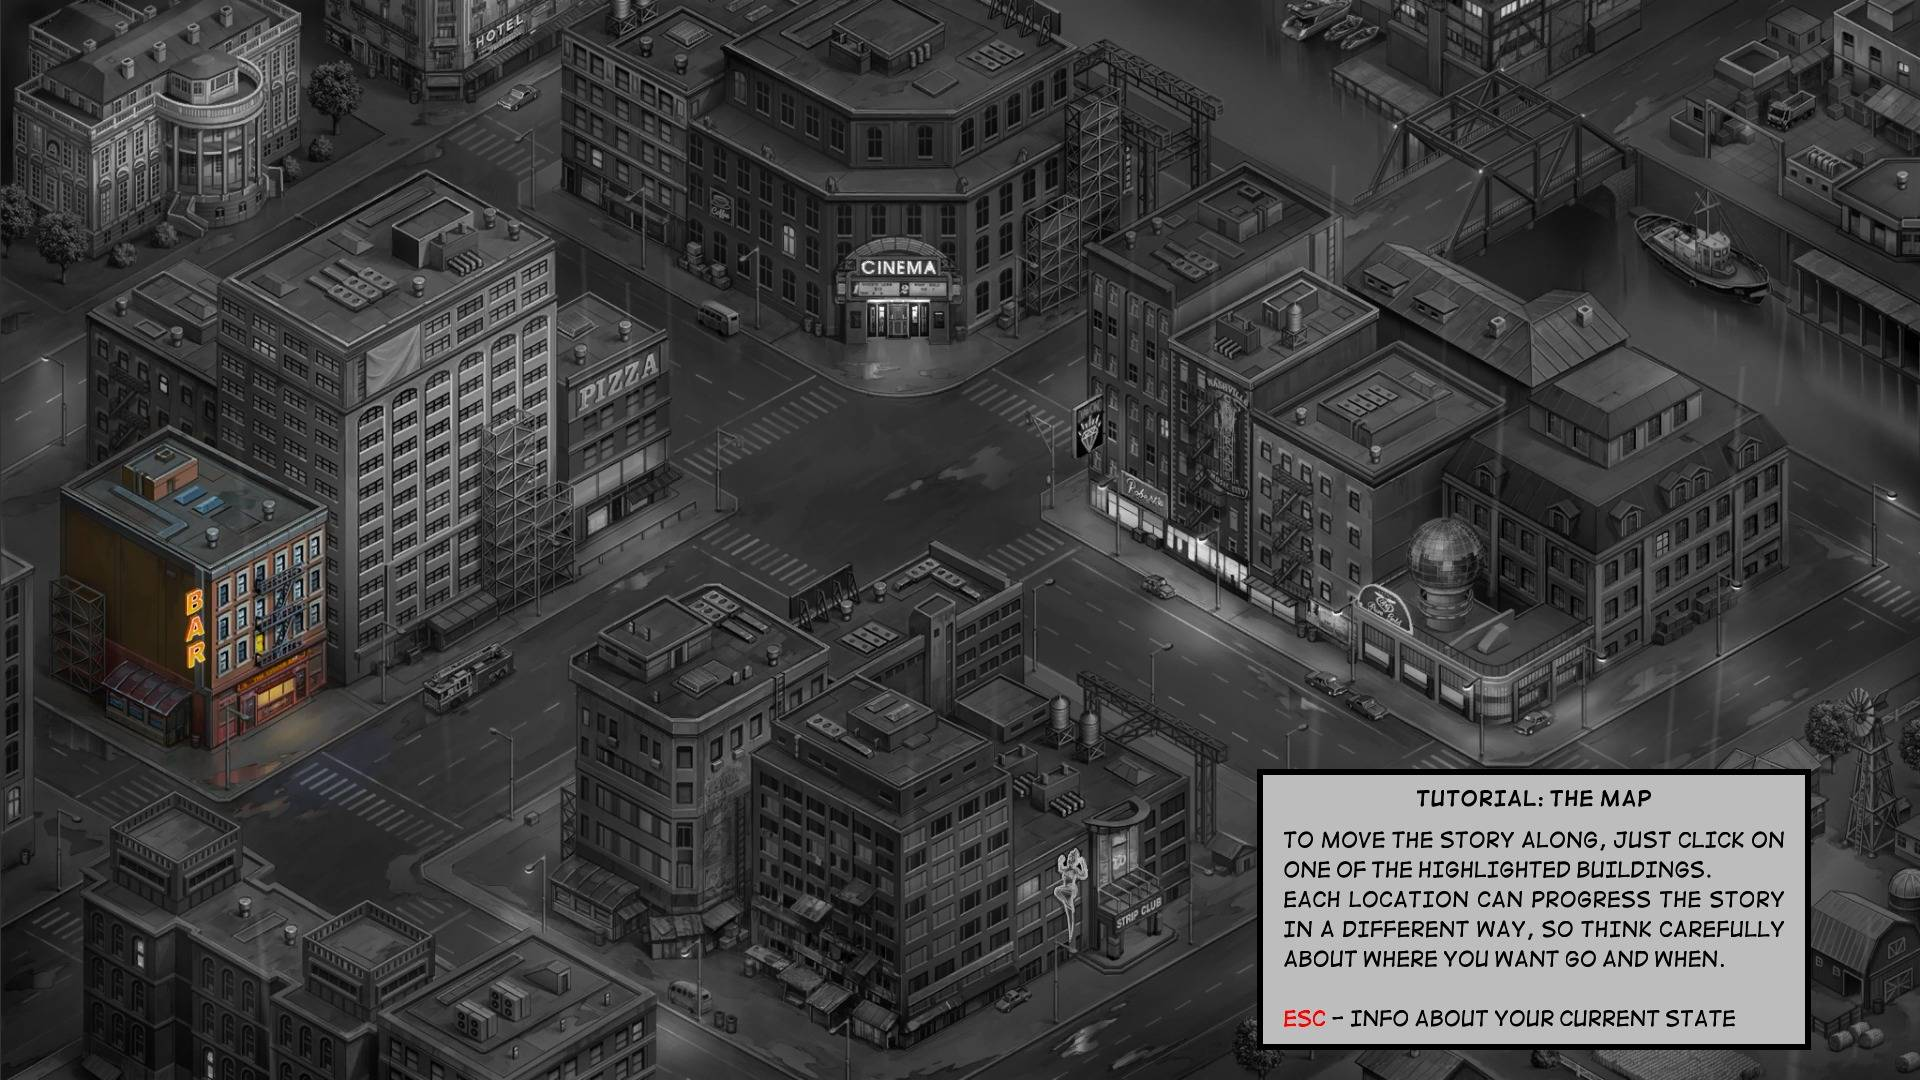 Metropolis Lux Obscura Arrives On Ps Vita Ps4 Switch Xbox One 4 Way Tutorial Nintendo